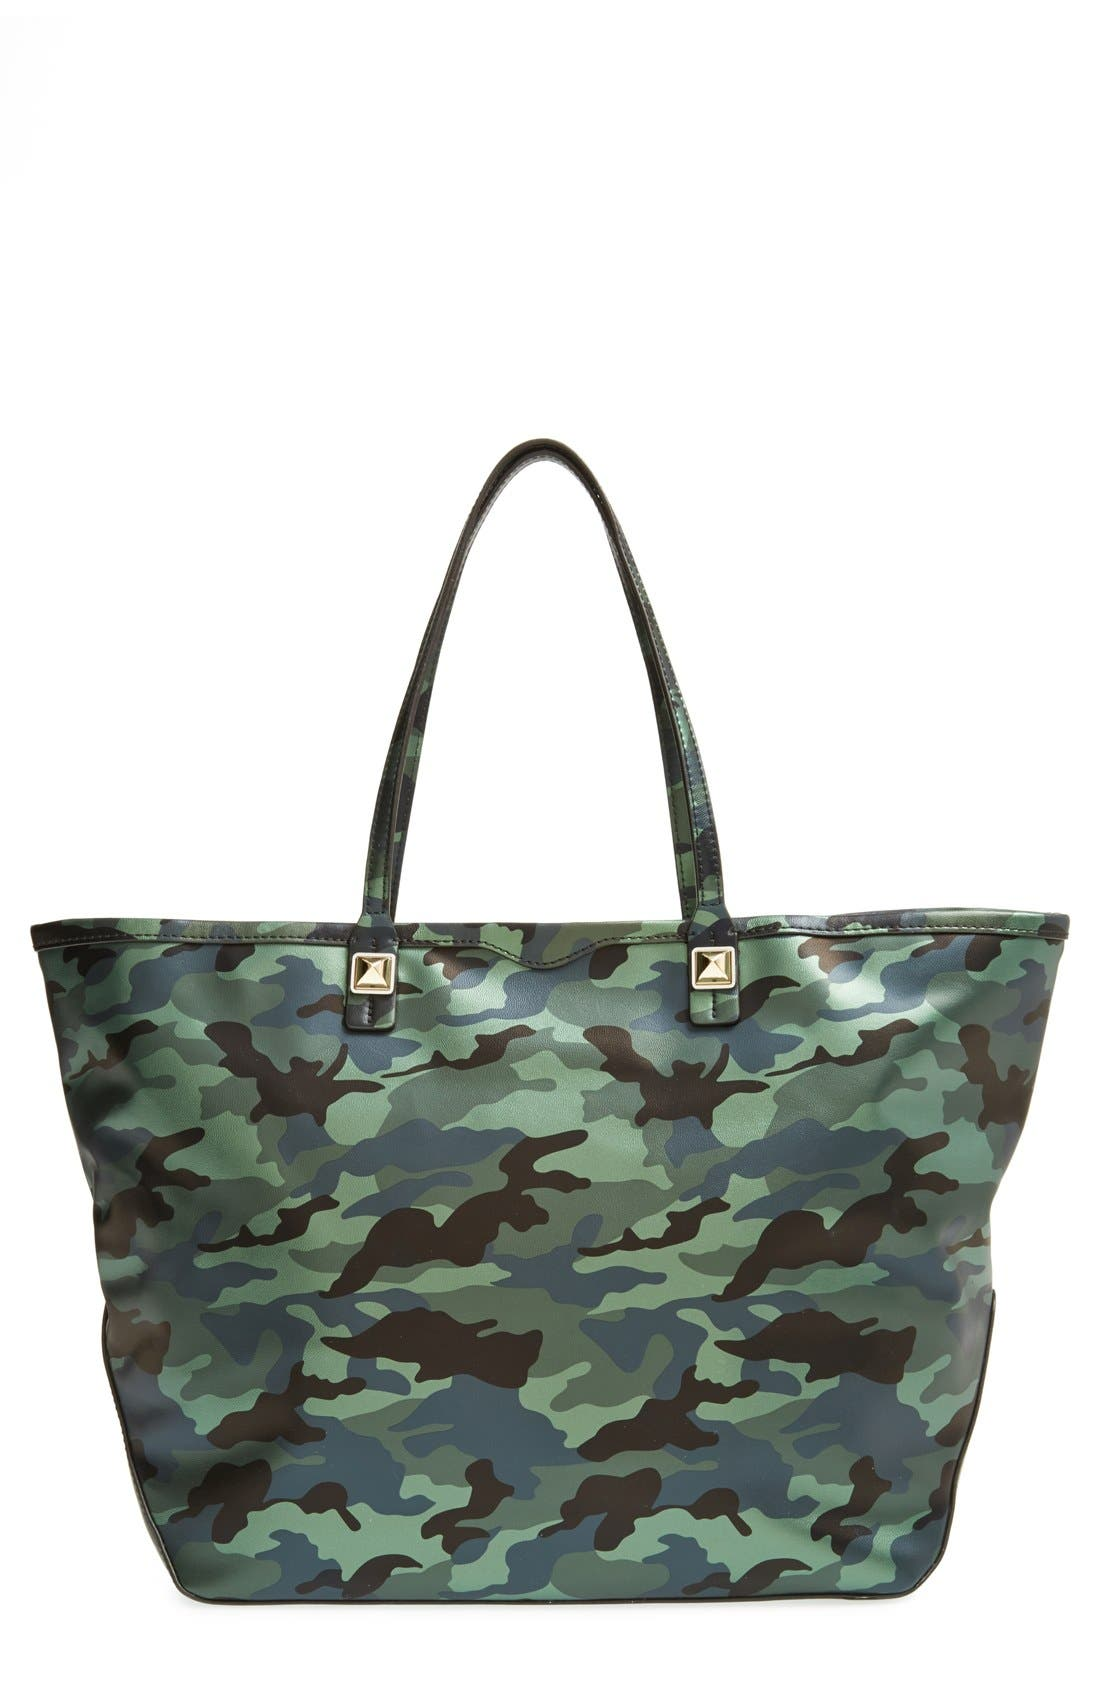 Alternate Image 1 Selected - Rebecca Minkoff 'Everywhere' Tote